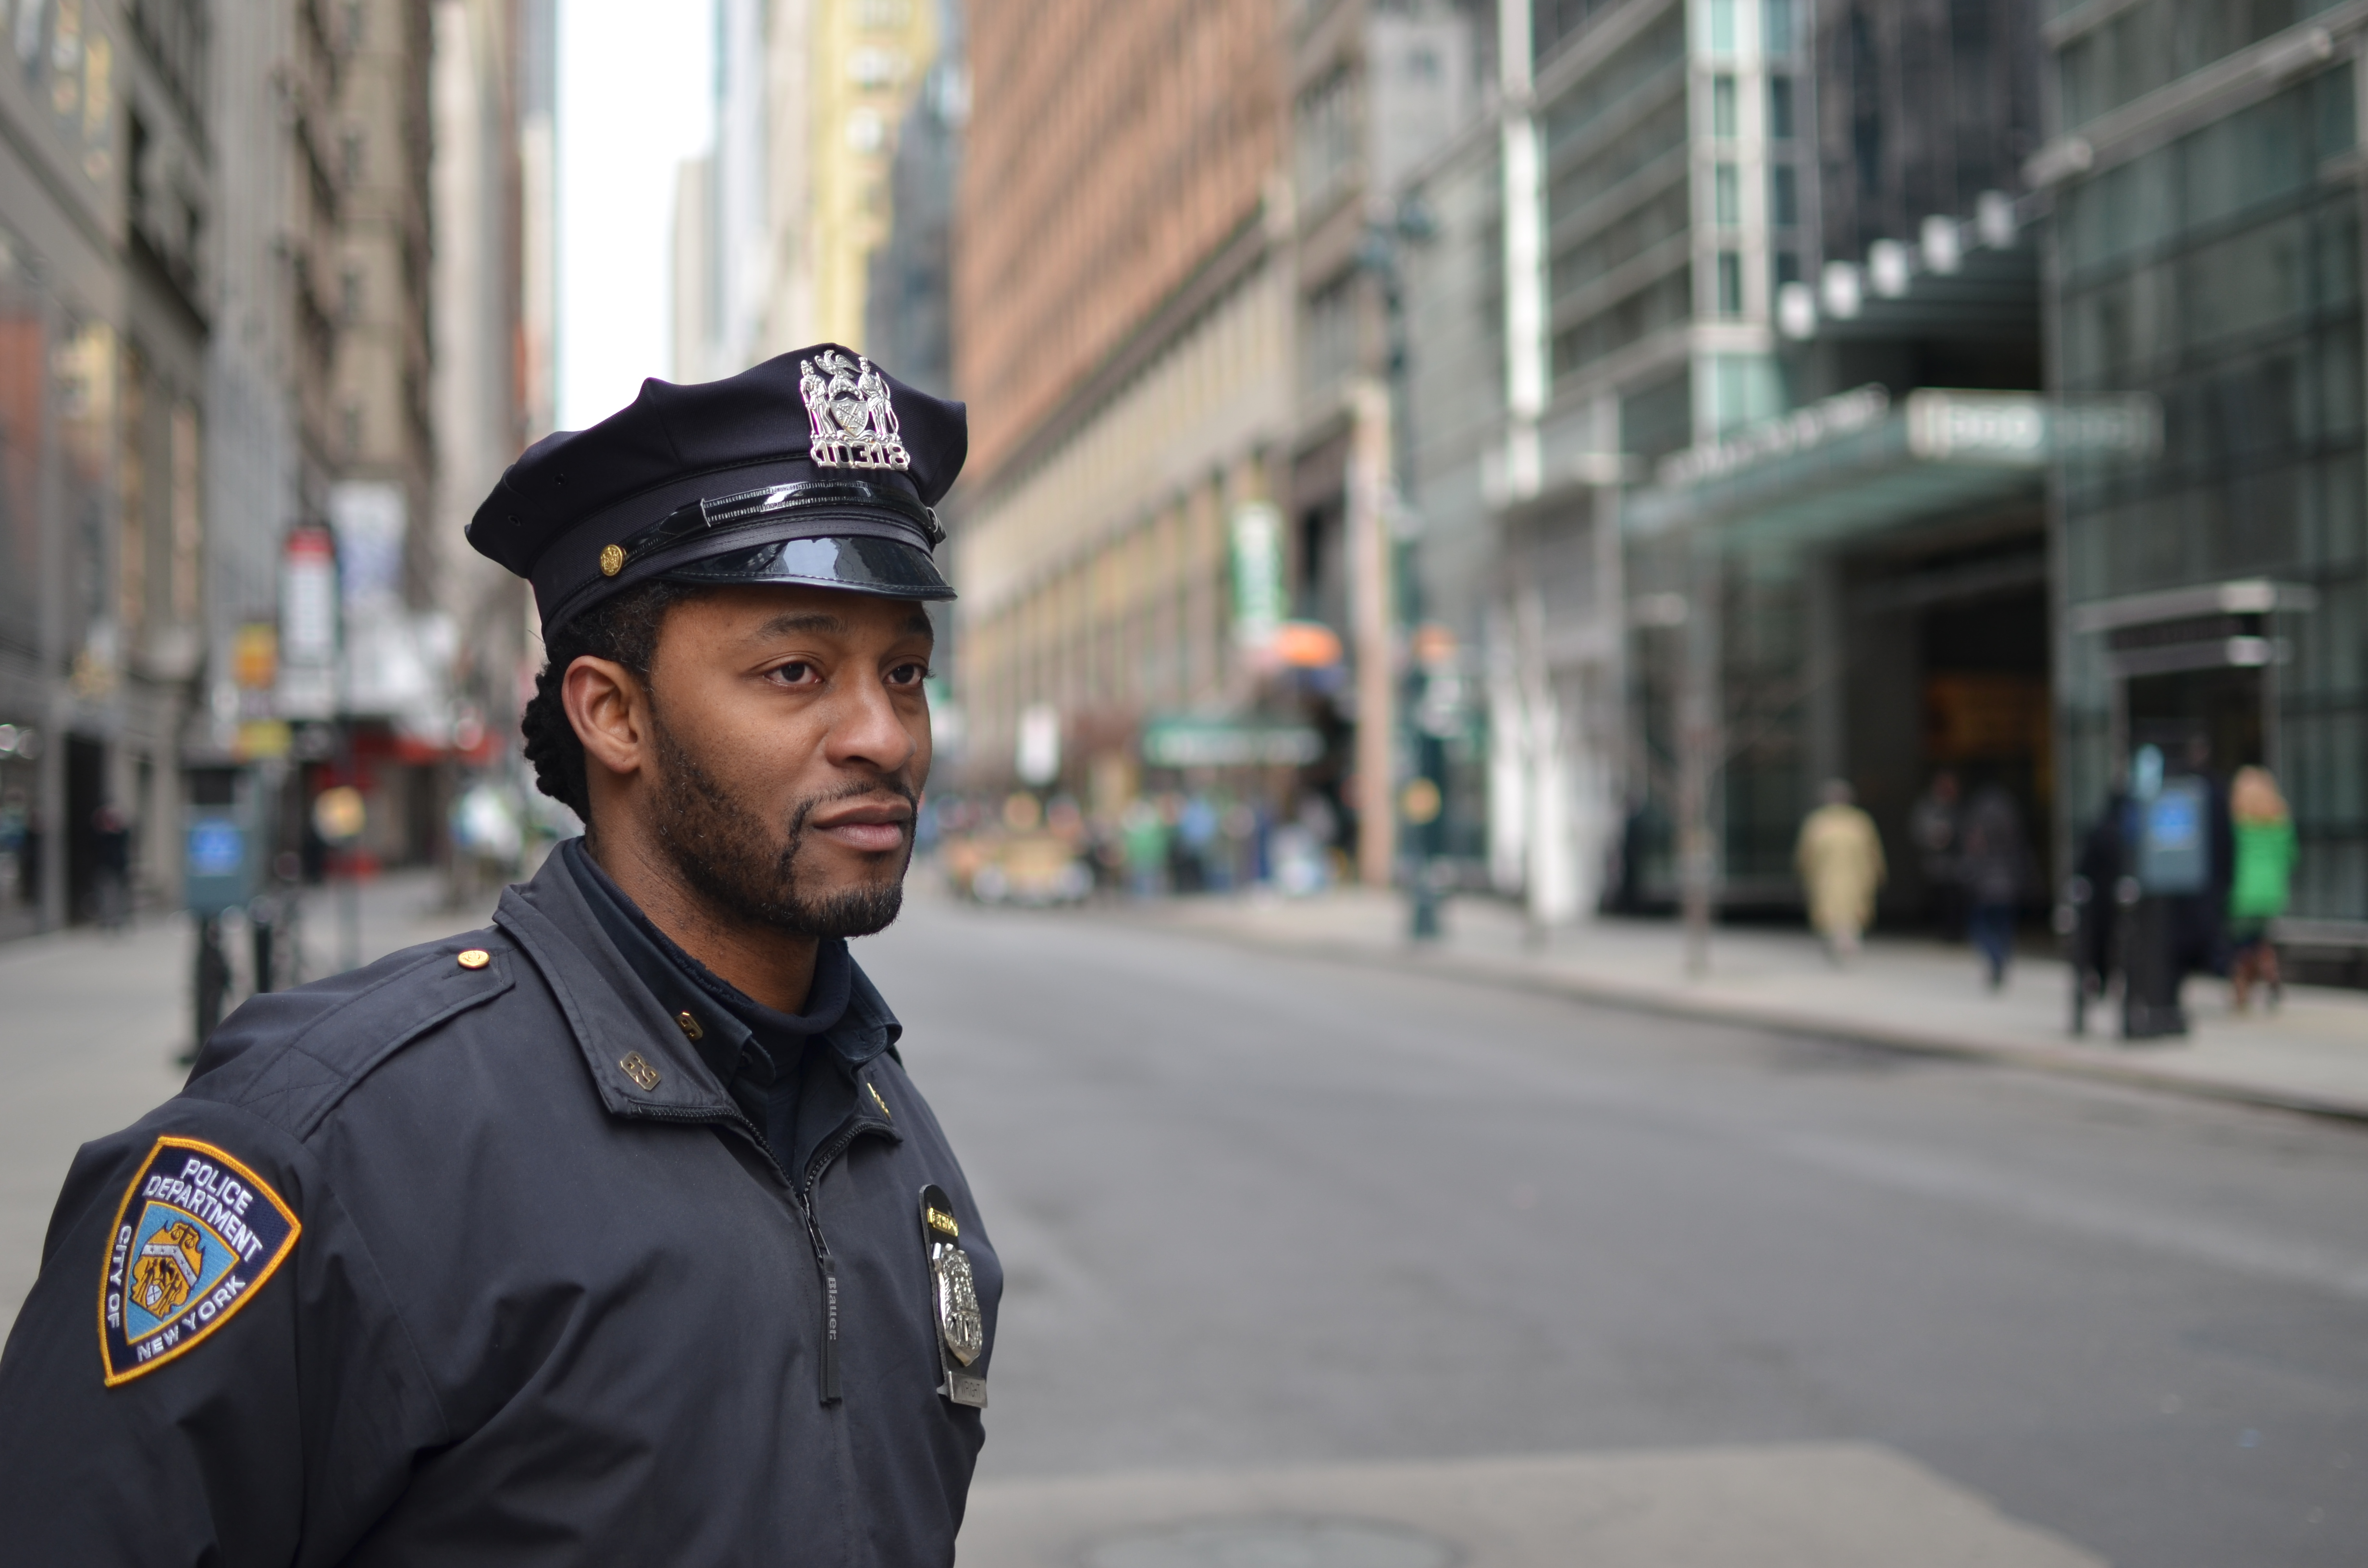 NYPD cop on the street